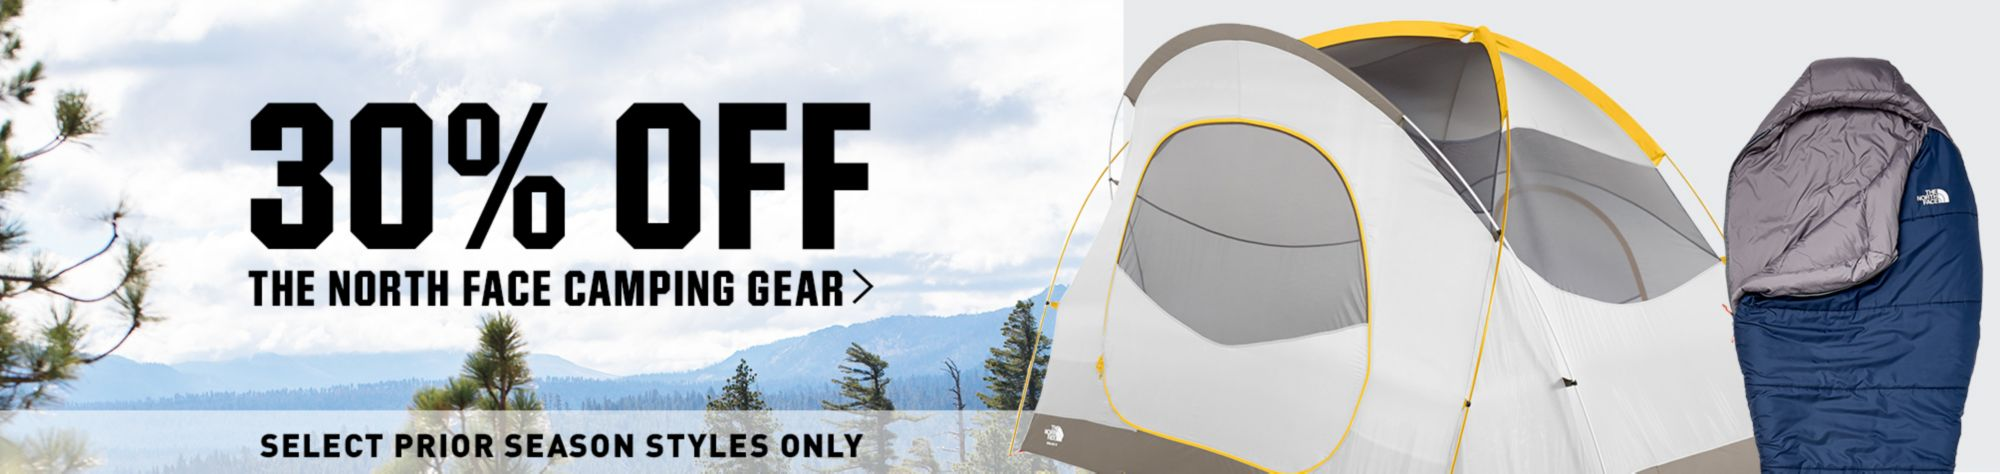 30% Off The North Face Camping Gear - Select Prior Season Styles Only